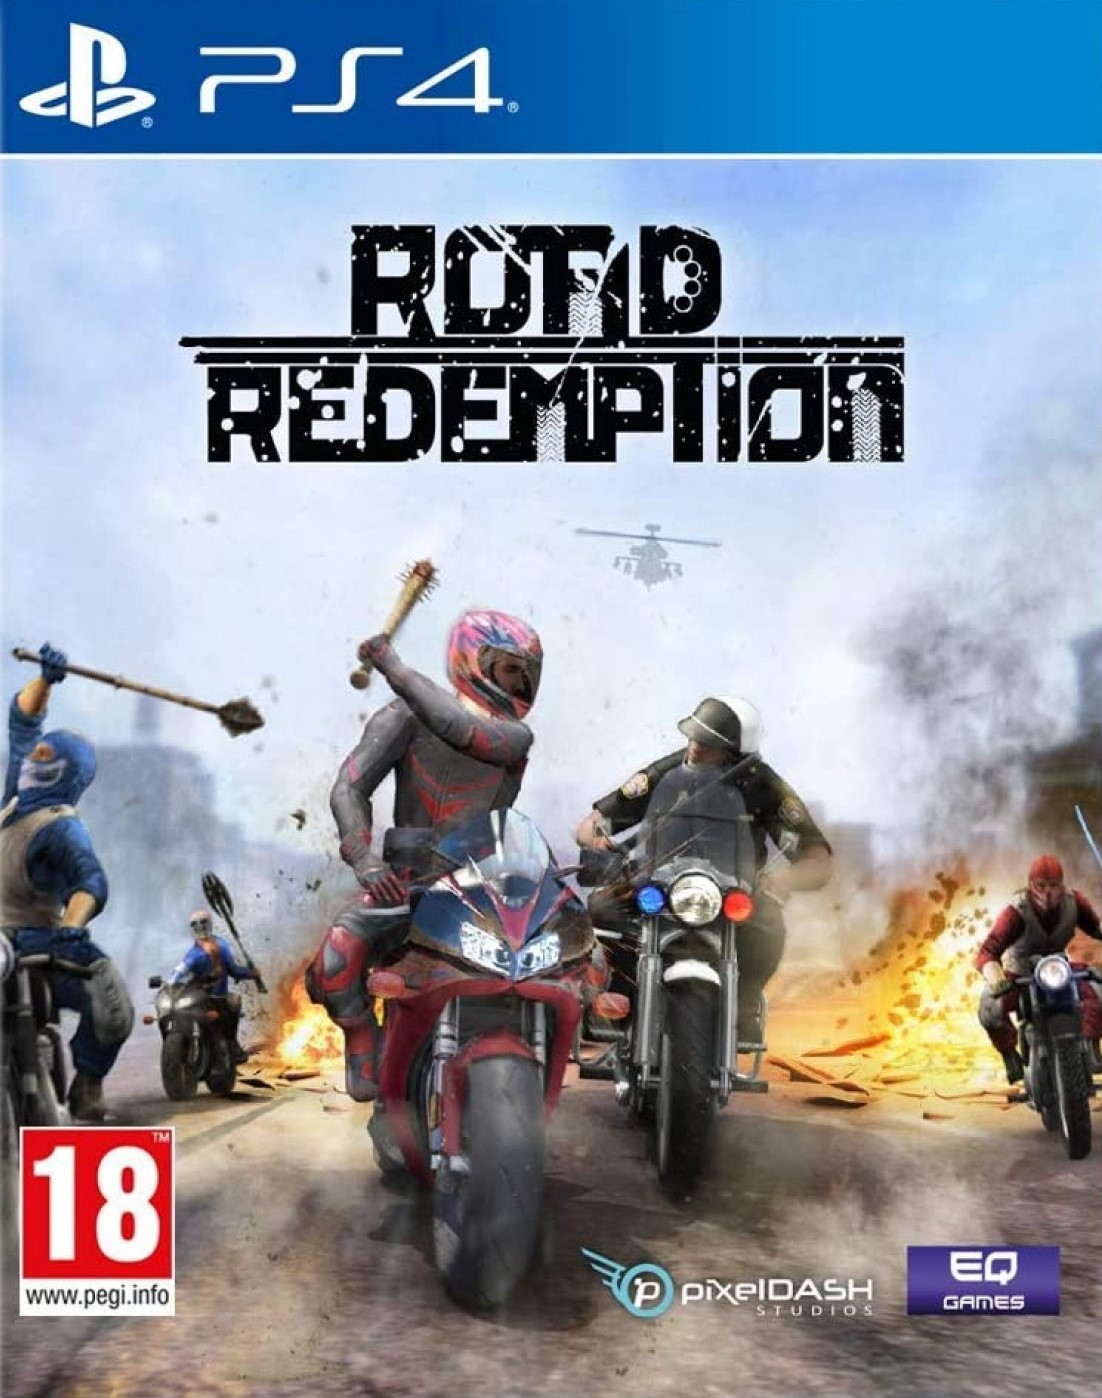 Road Redemption [PS4] 6.72 / 7.02 [EUR] (2018) [Русский] (v1.04)